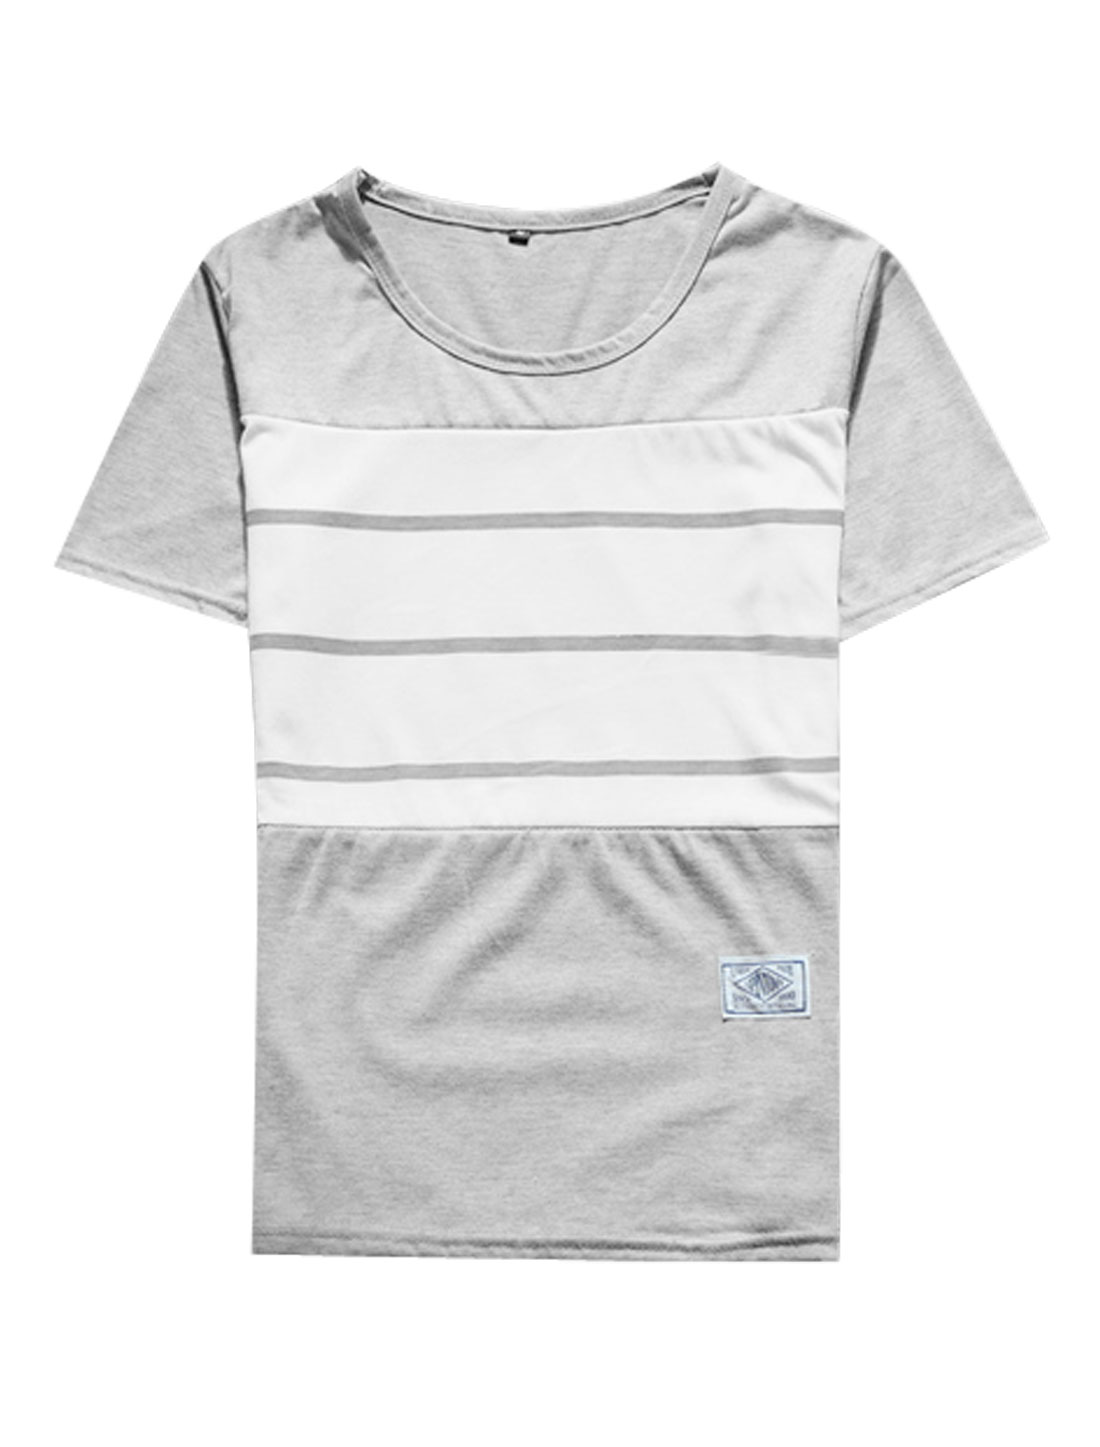 Men Short Sleeve Contrast Color Stretchy T-Shirts Light Gray White M